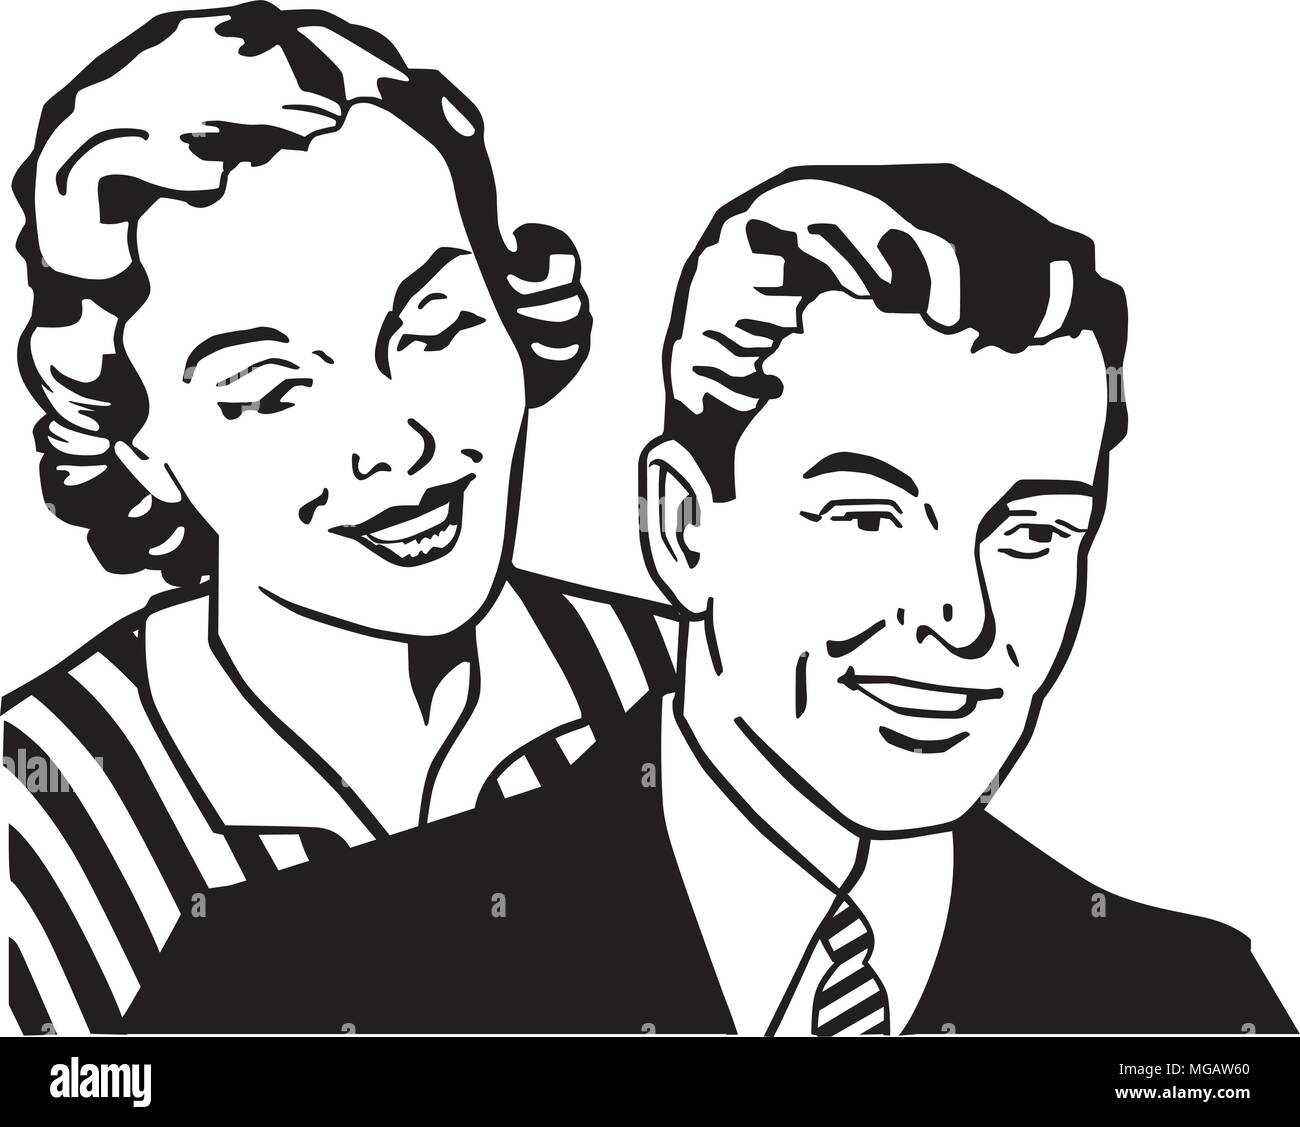 Retro Couple - Retro Clipart Illustration - Stock Image